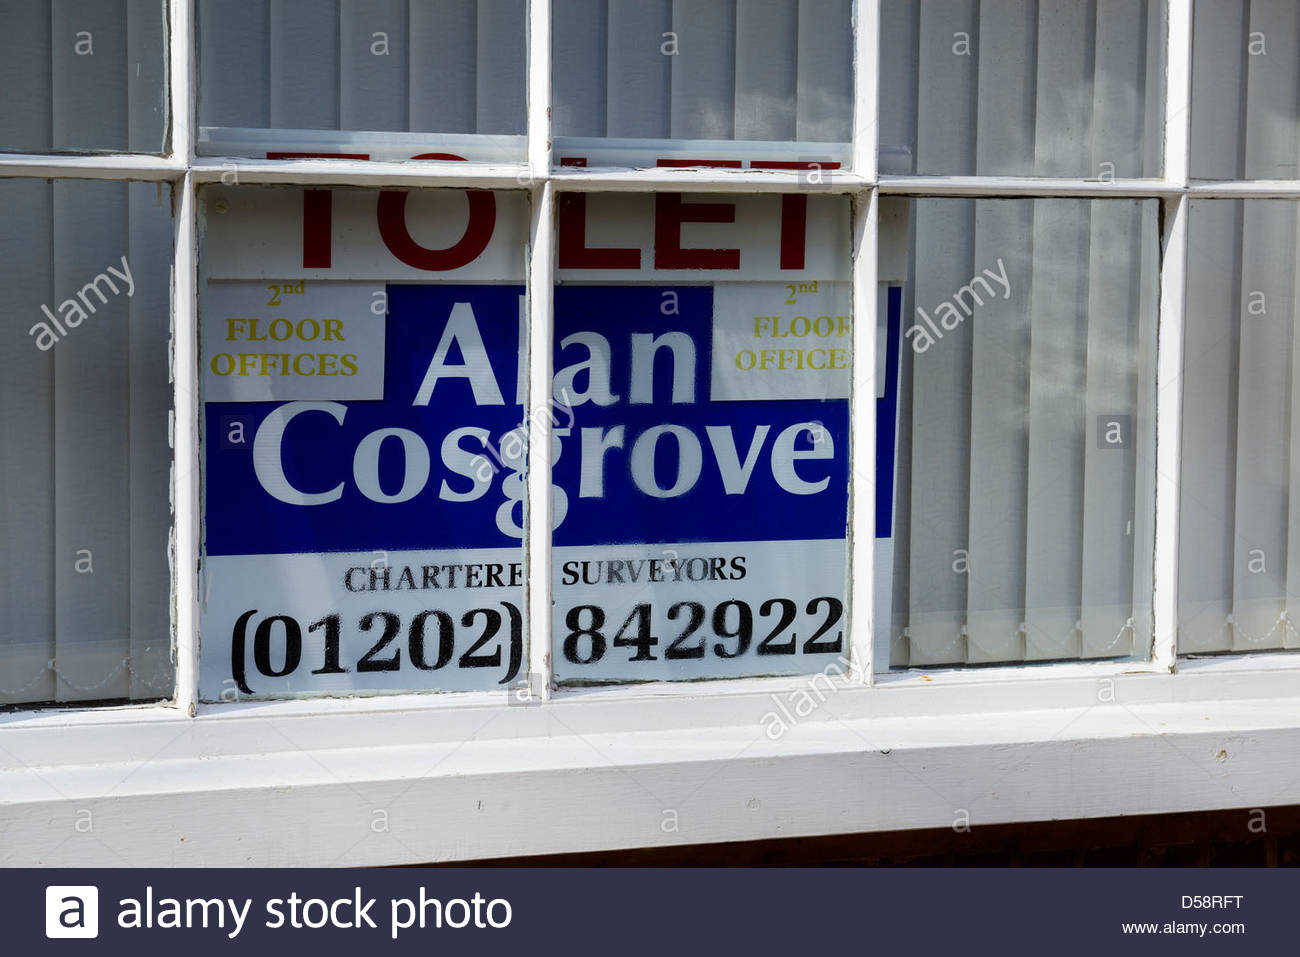 Office to let board in window, Wimborne, Dorset England - Stock Image